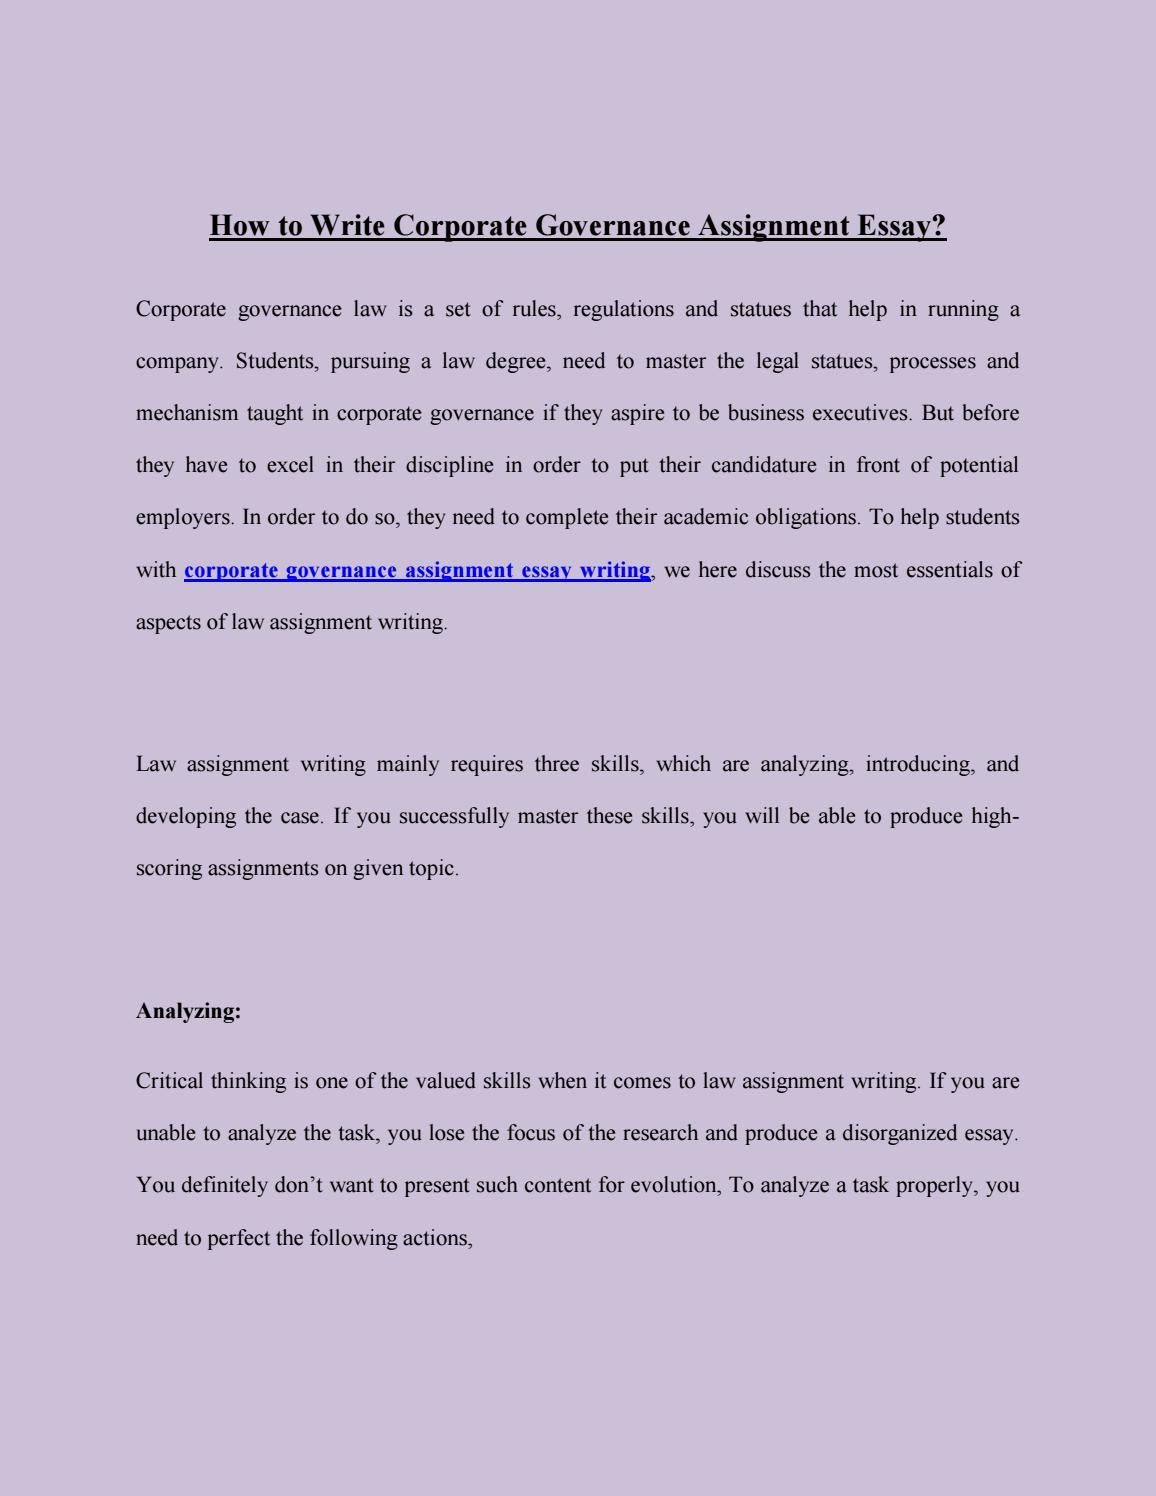 how to write corporate governance assignment essay by ameeliabrown how to write corporate governance assignment essay by ameeliabrown